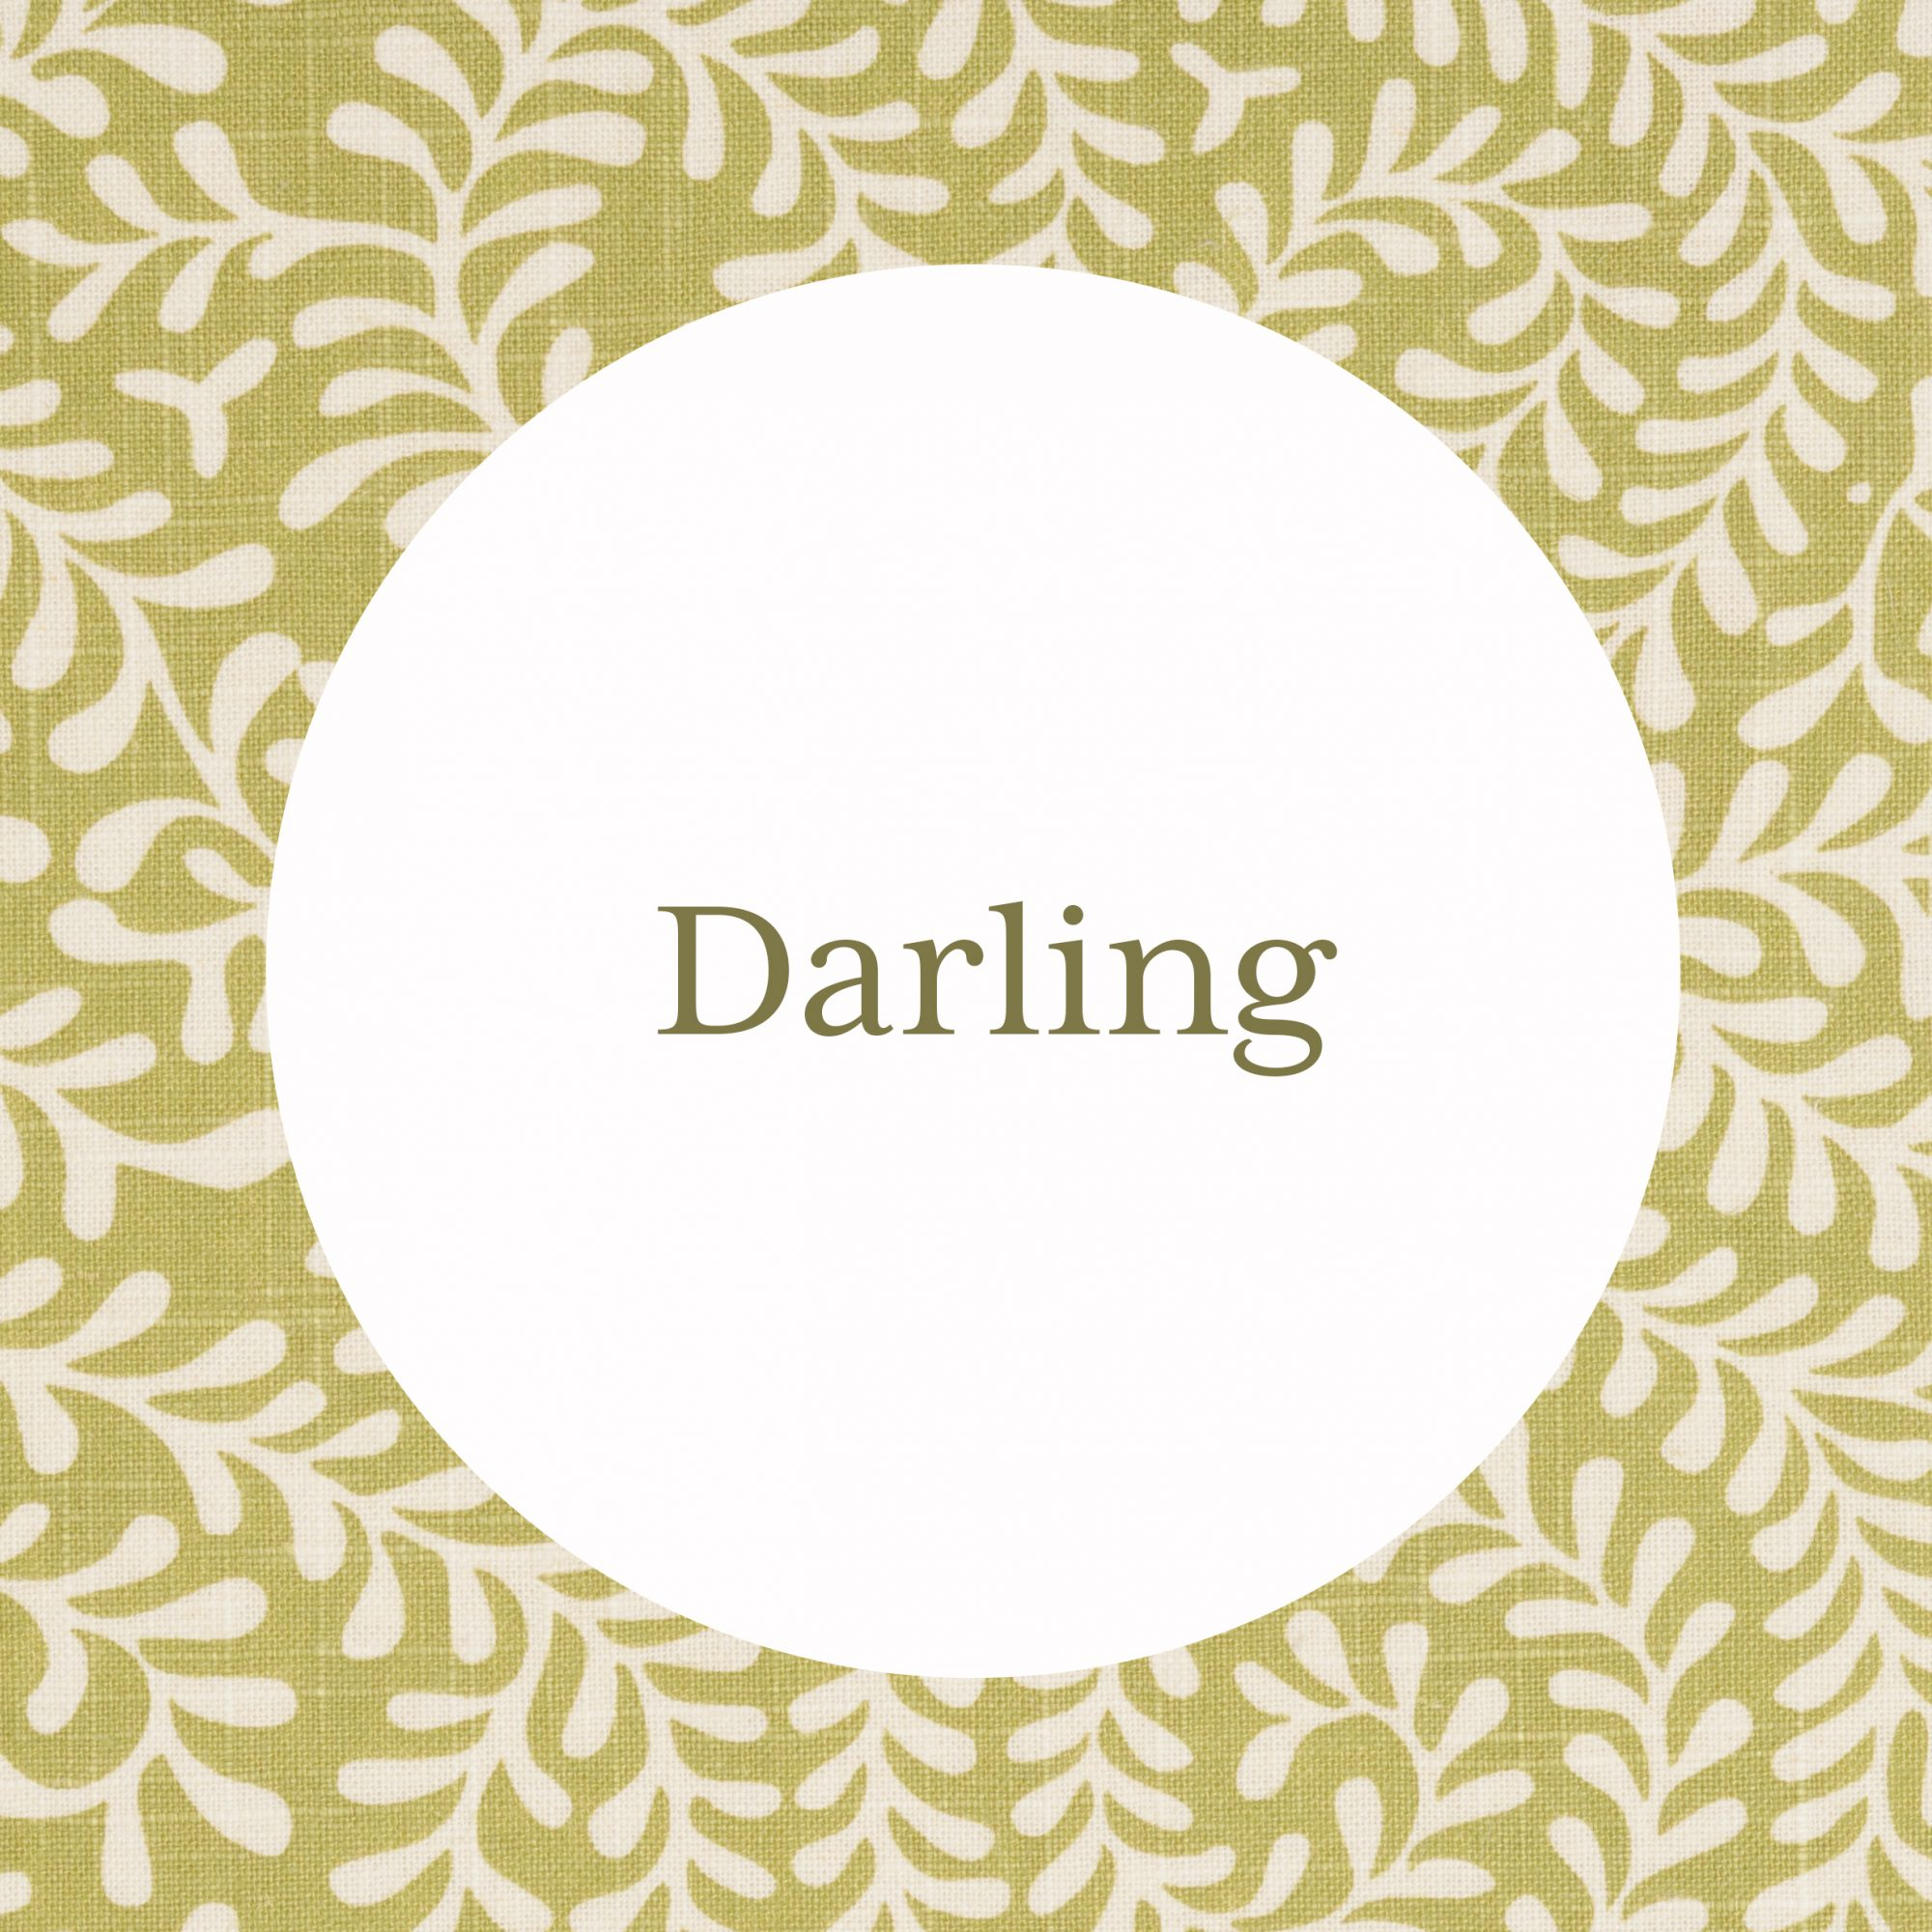 Darling Grandmother Name